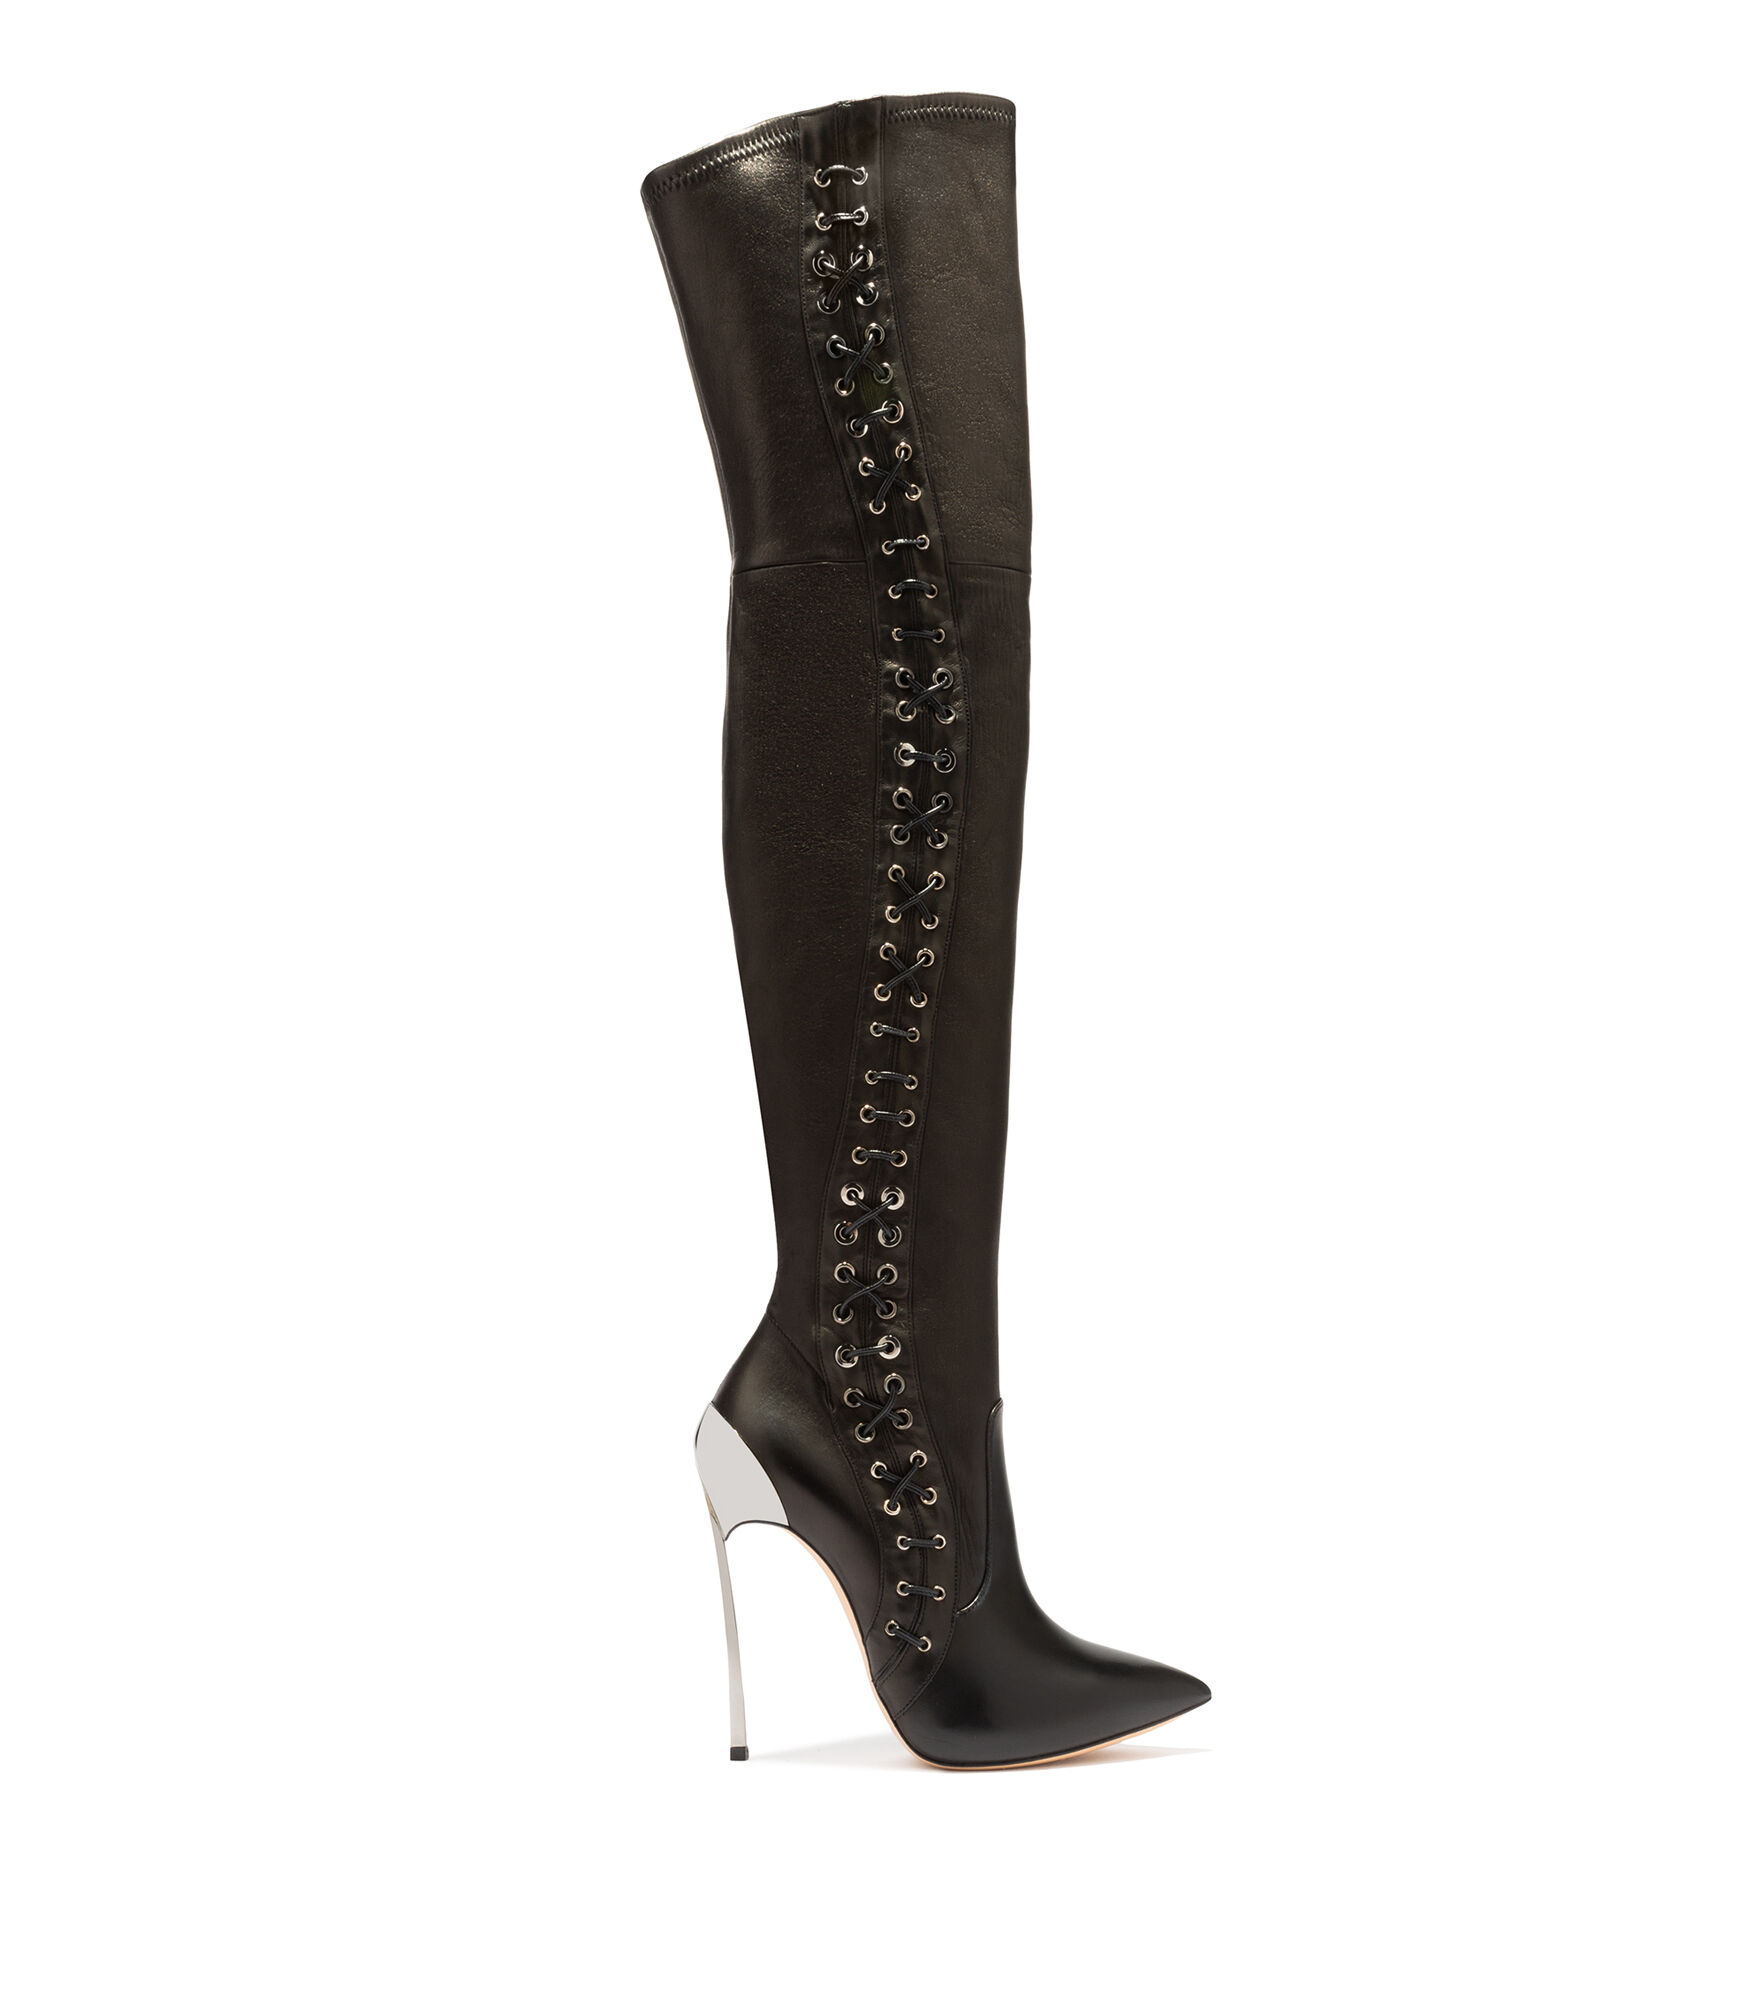 Casadei High Boots - Techno Blade Black Soft Leather